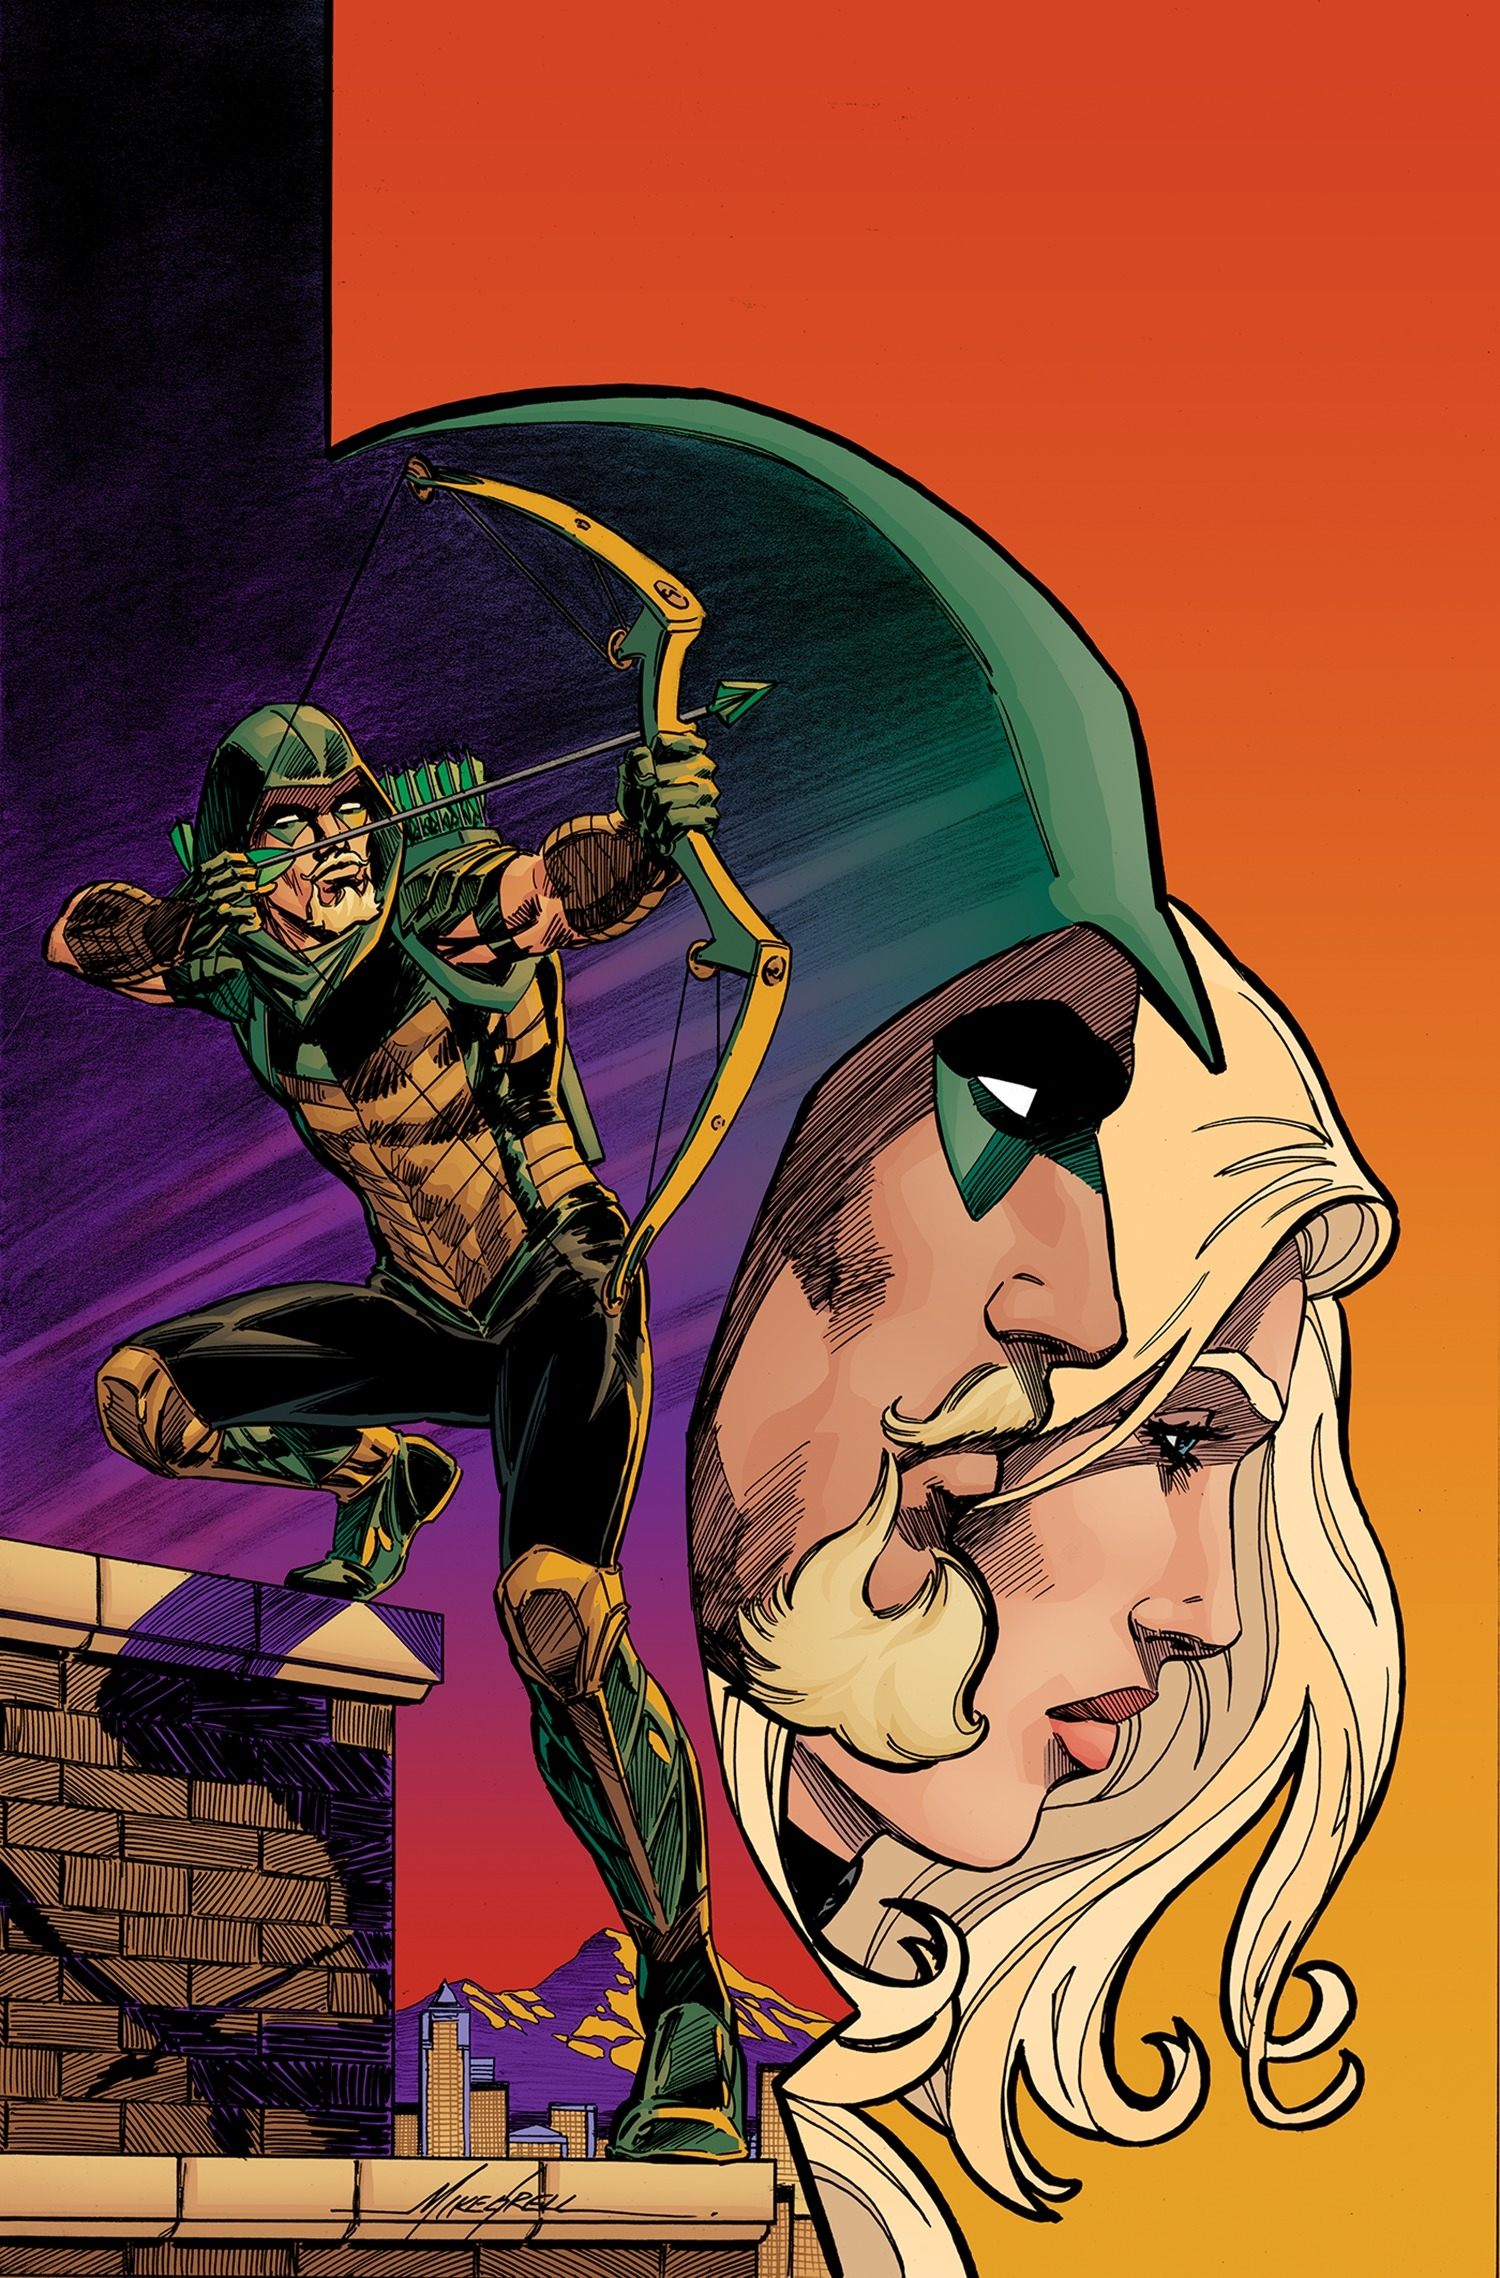 Green Arrow Vol. 6 (Rebirth) (Green Arrow - Rebirth) by Benjamin Percy, ISBN: 9781401281717